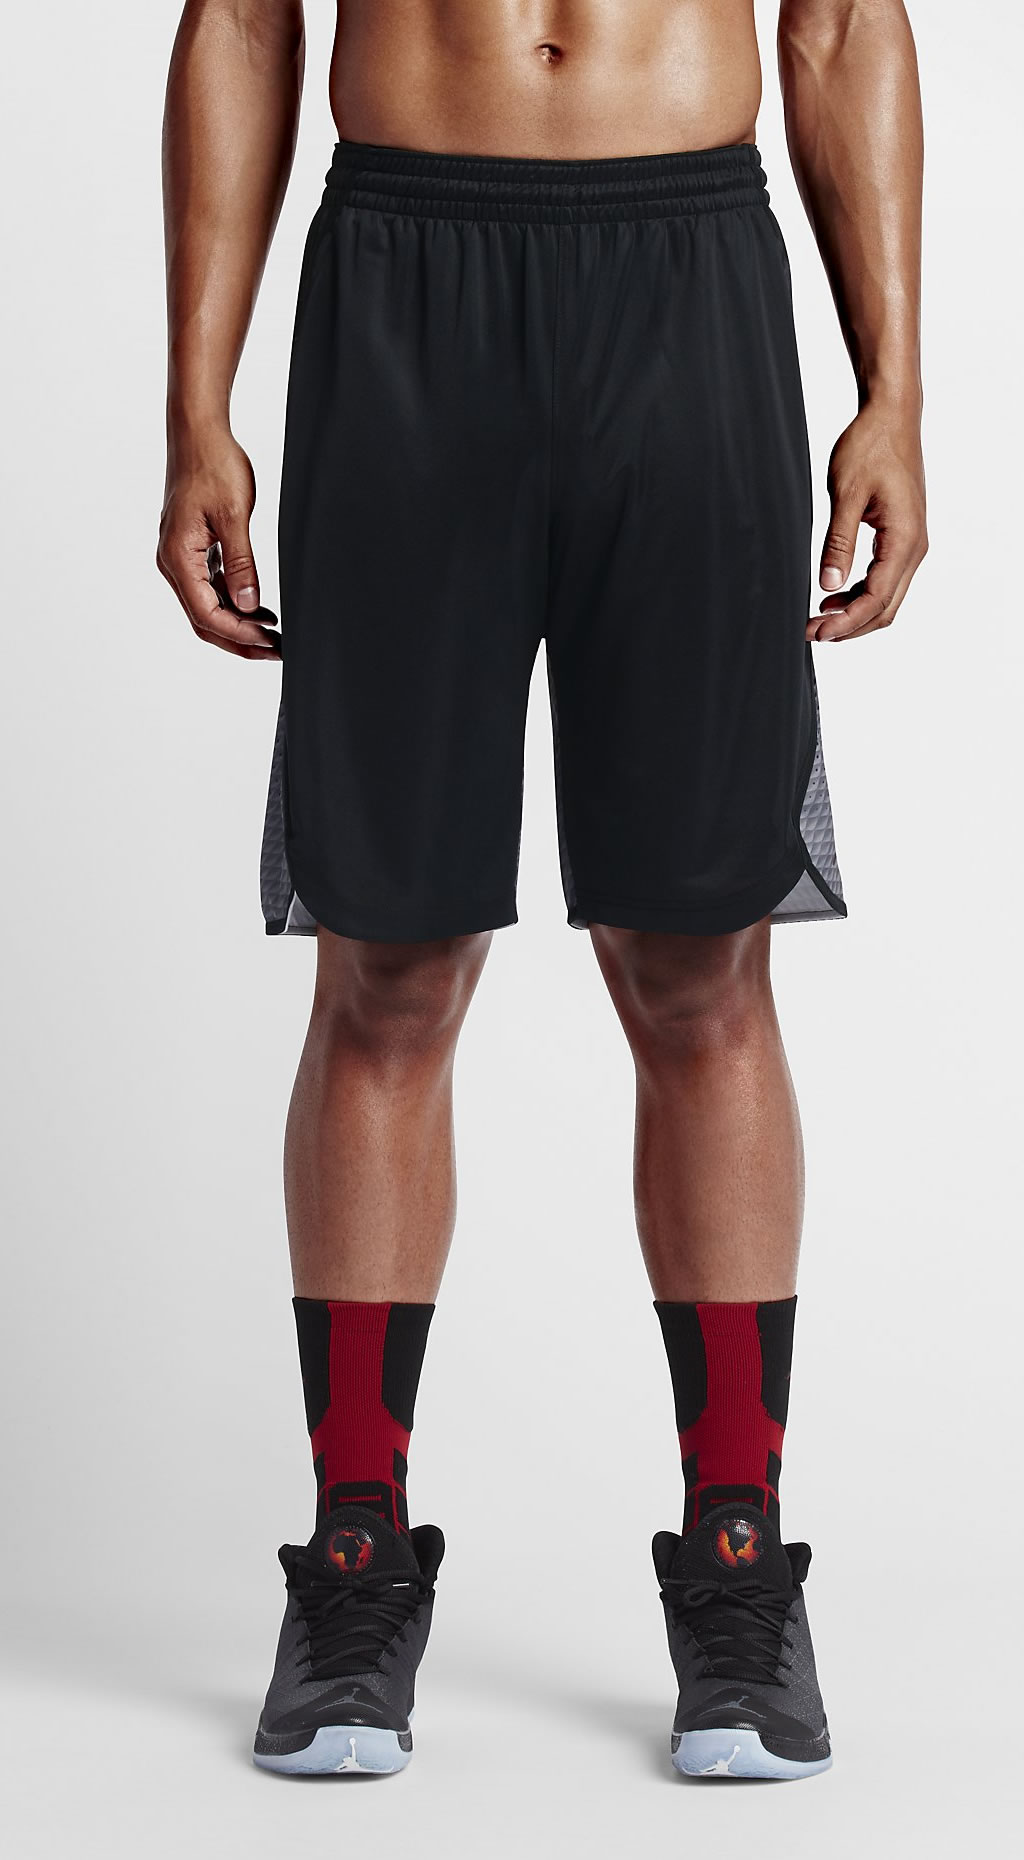 bc33df169c2 Create The Ideal Basketball Outfit With These Jordan Pieces!